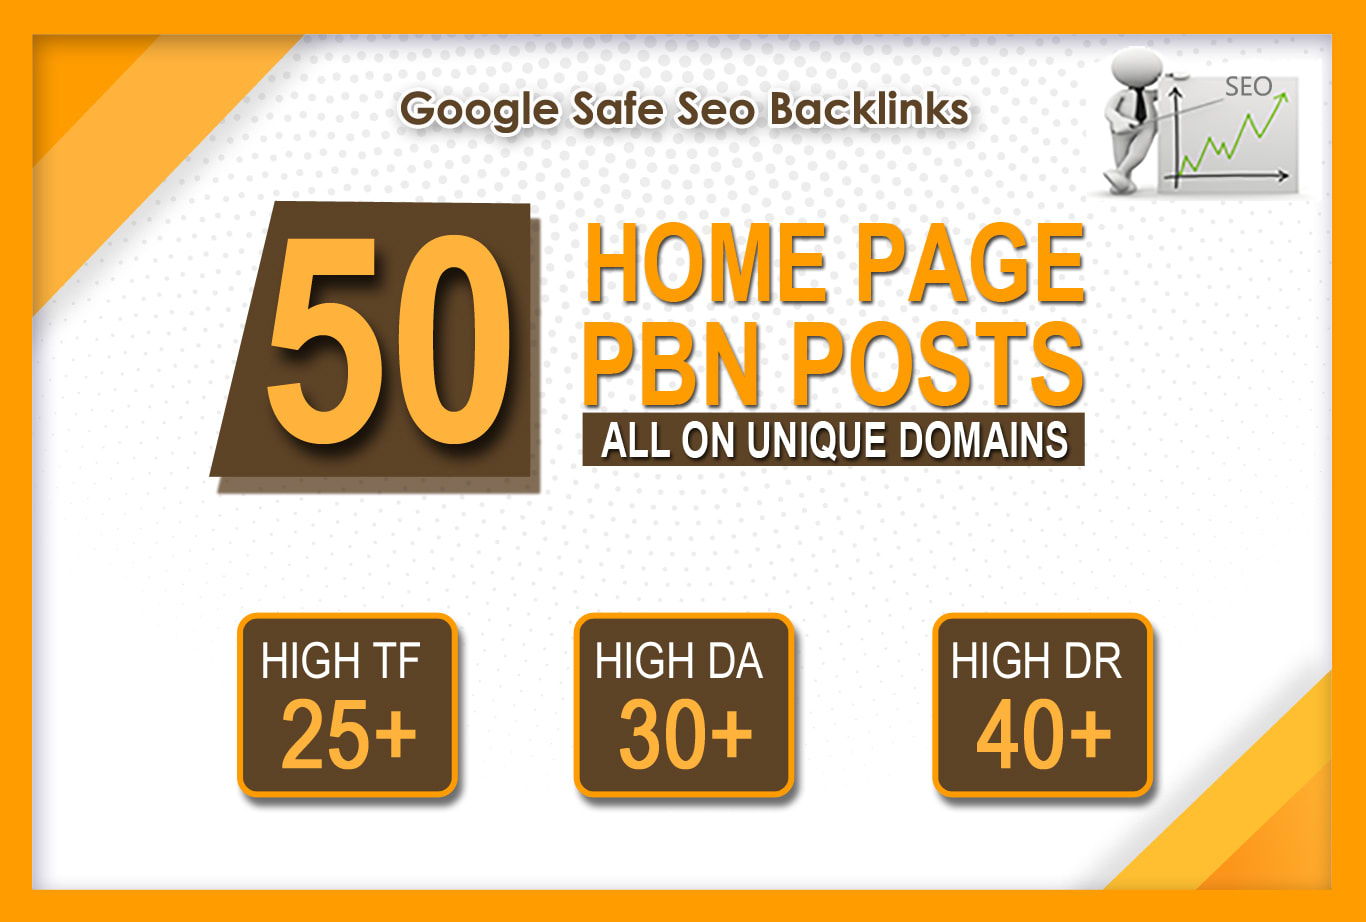 I will 50 high da pa tf cf homepage pbn backlinks permanent posts